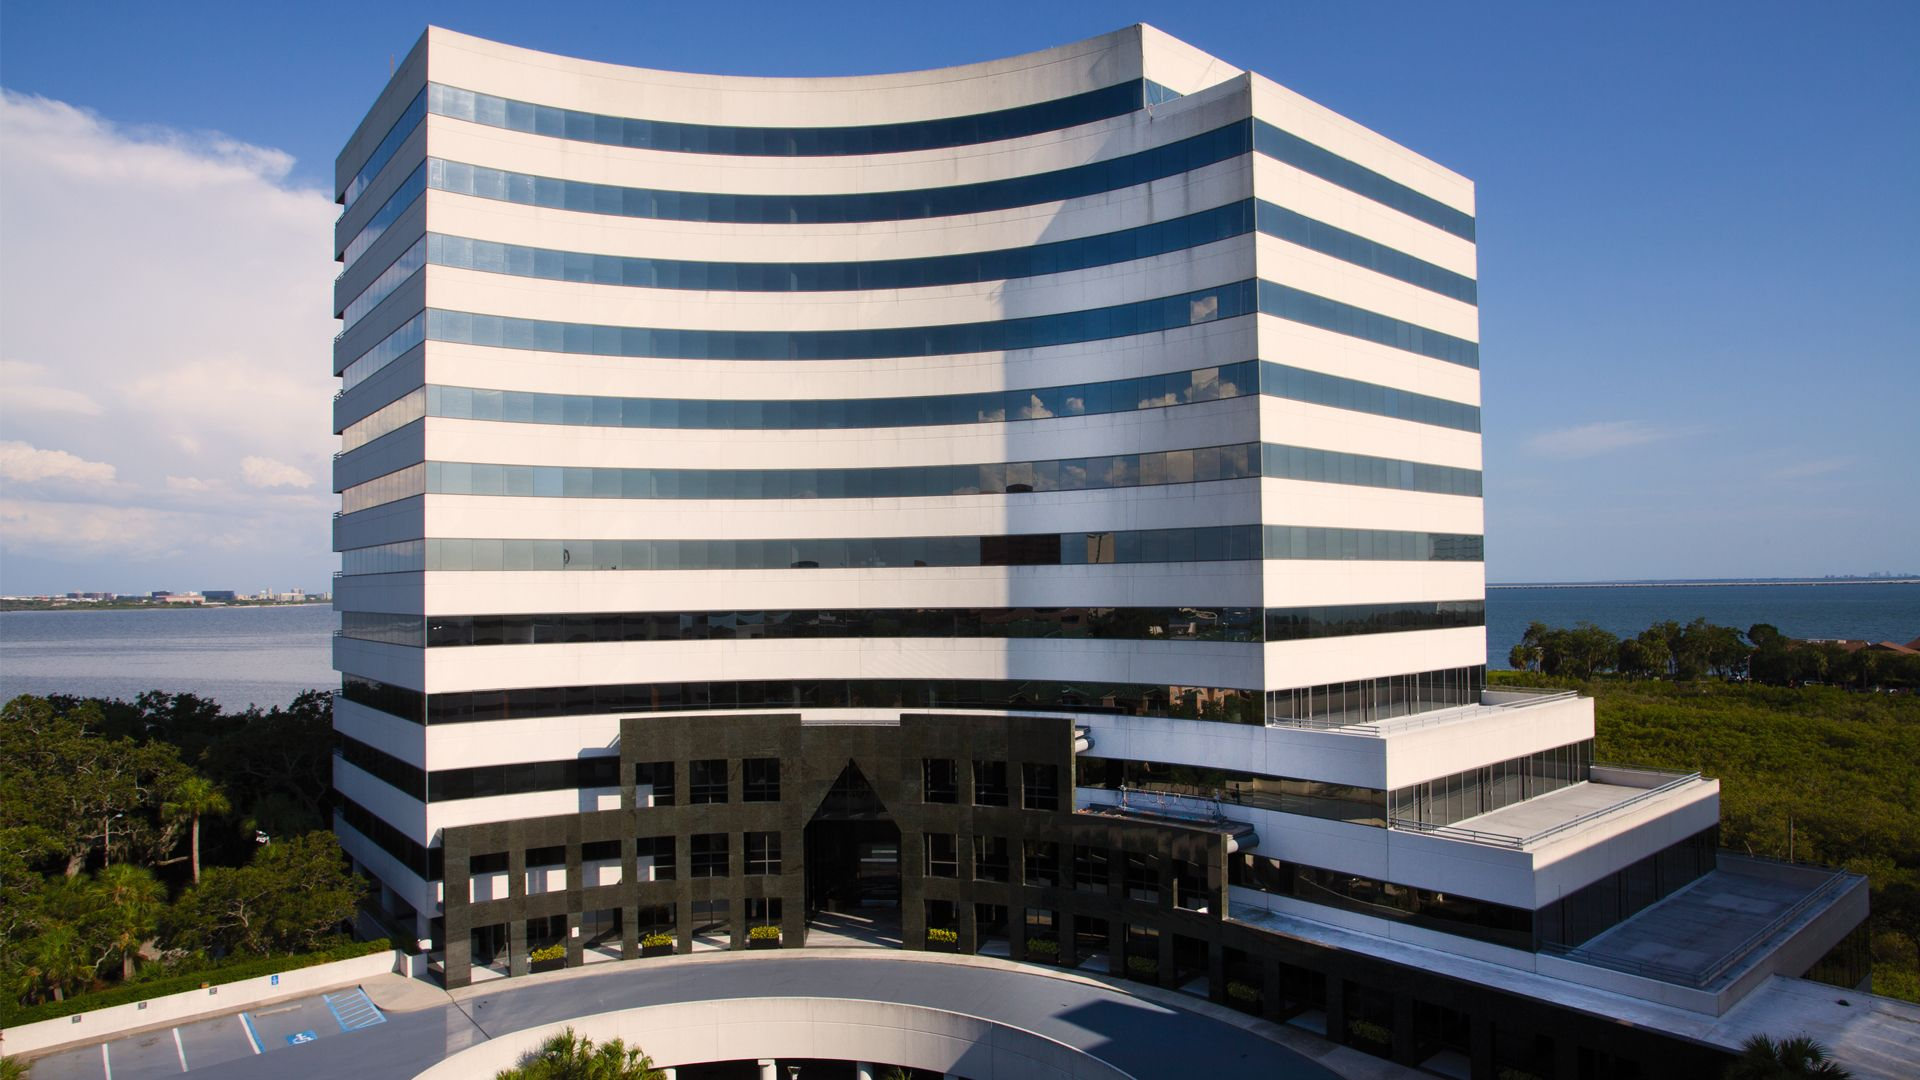 Island Center At Rocky Point In Tampa Fl Commercial Real Estate Building Skyscraper